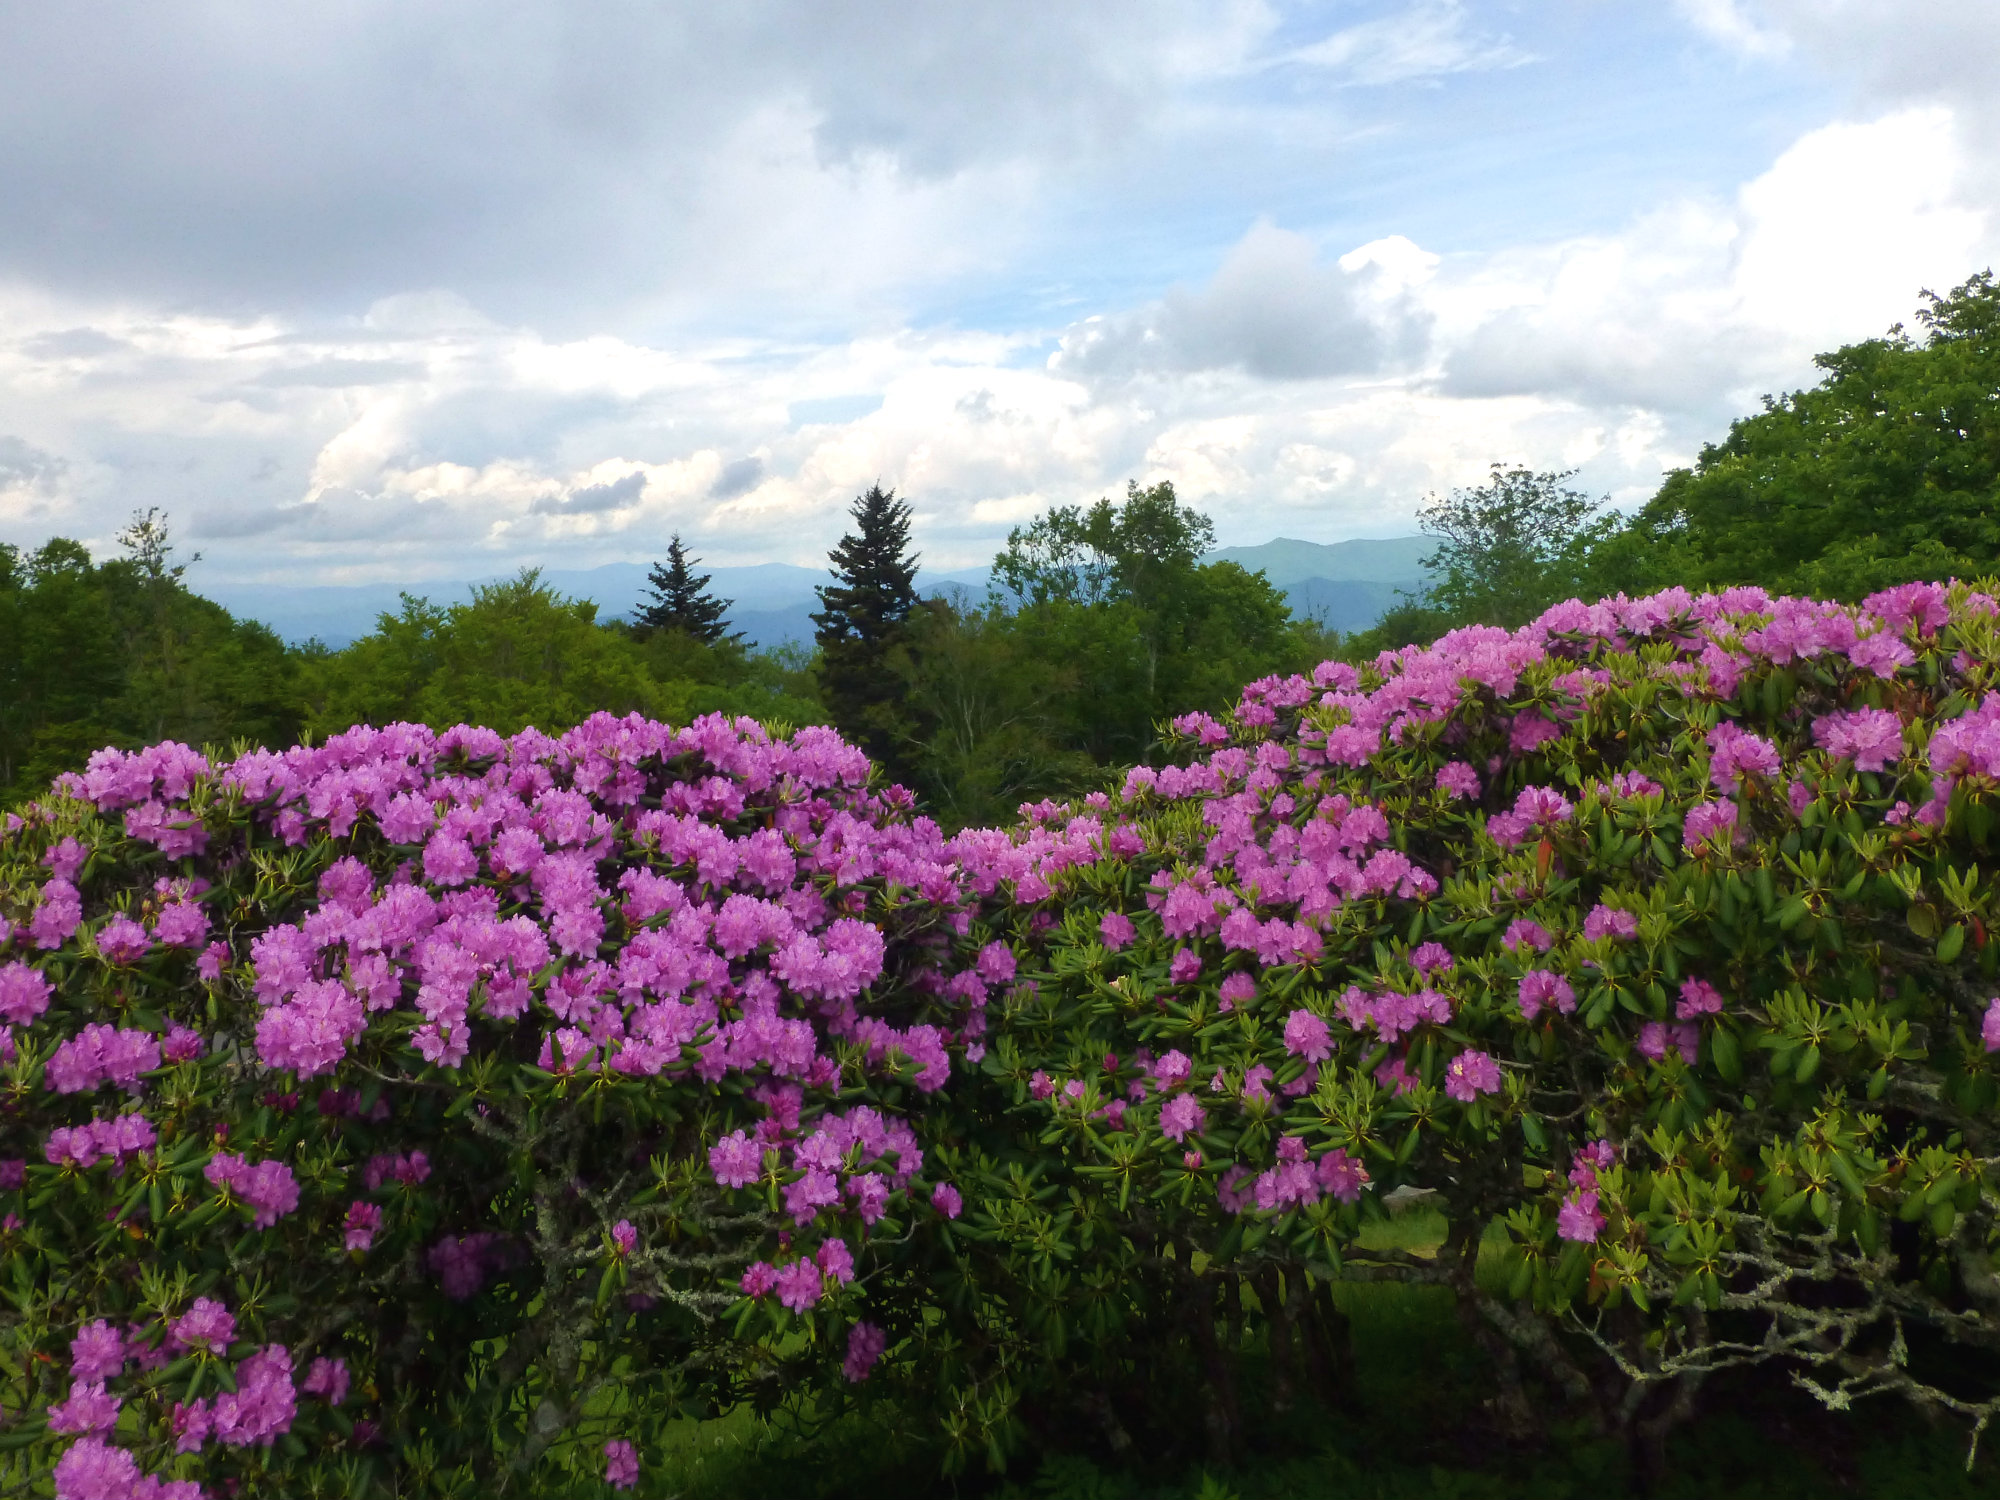 Large flowering shrubs with mountain vistas in the background